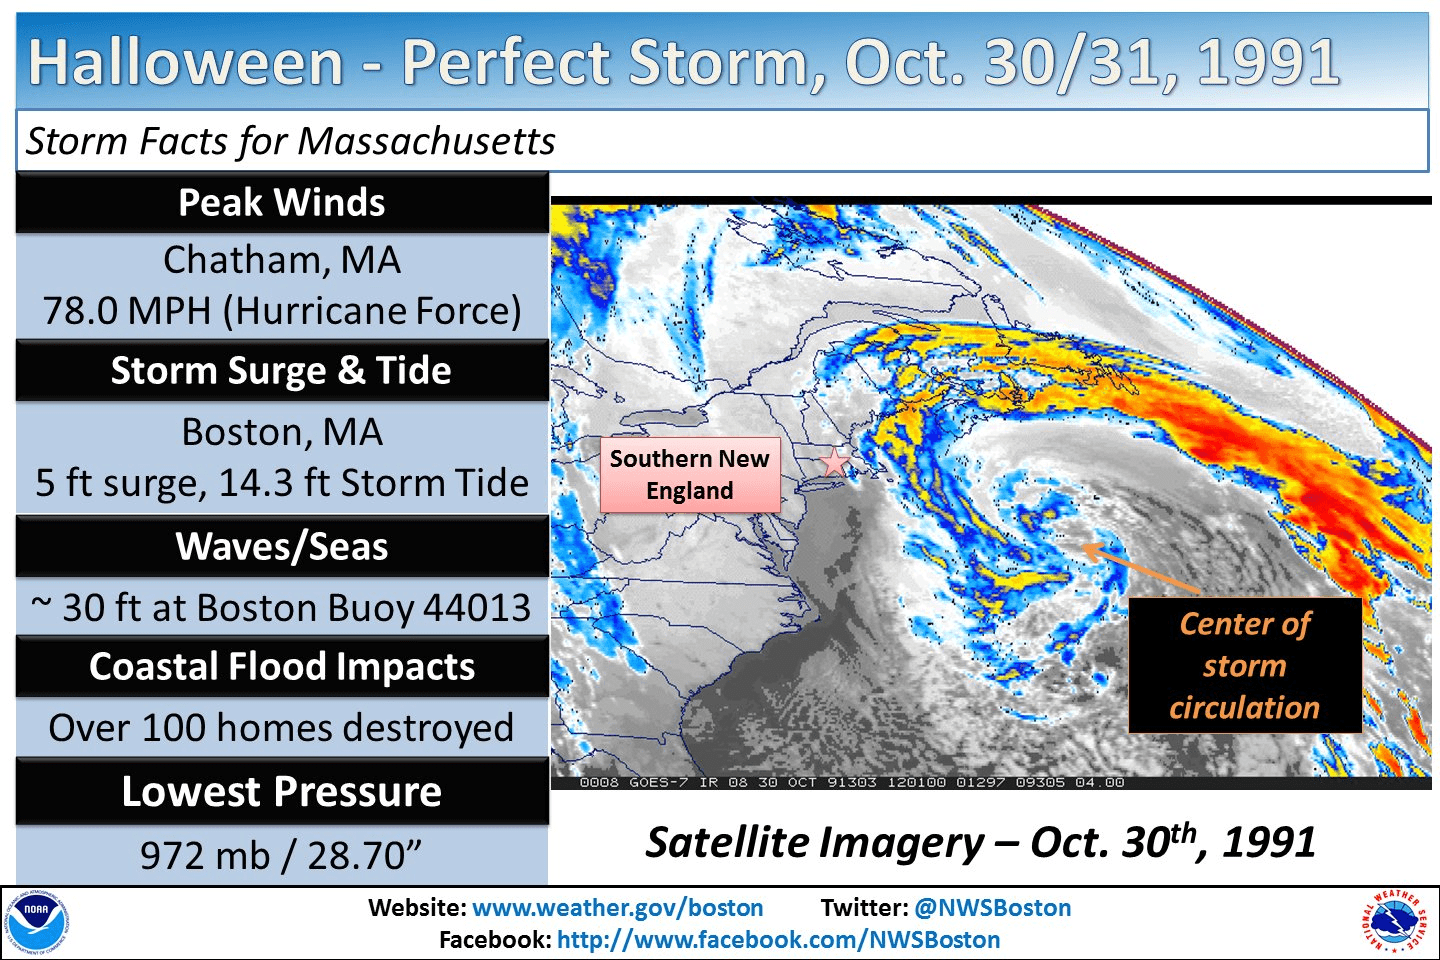 Summary of the Halloween/Perfect Storm (Courtesty:NOAA-Taunton)